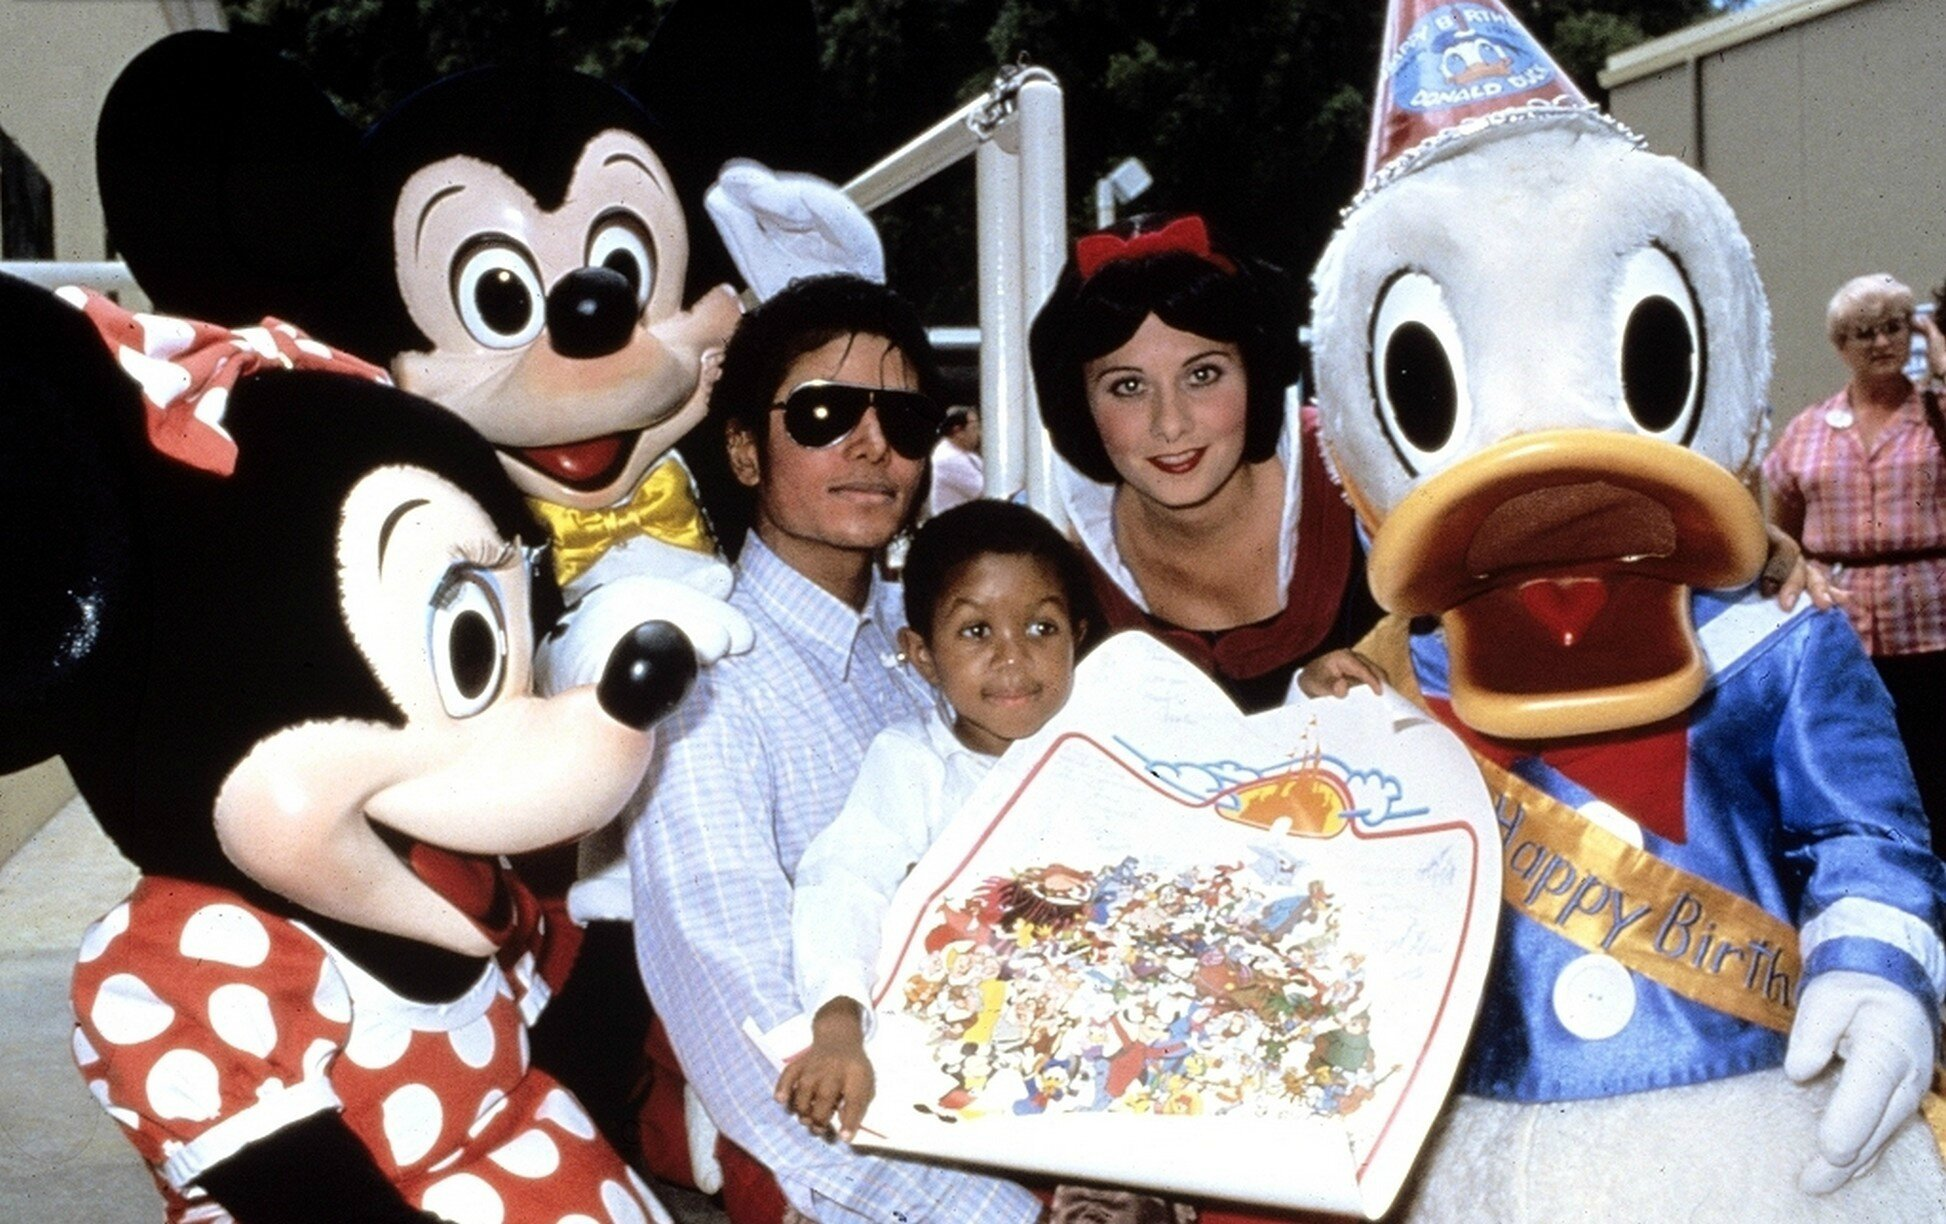 October-1984-Michael-Jackson-and-Emanuel-Lewis-at-Disney-World-michael-jackson-7429338-1946-1224